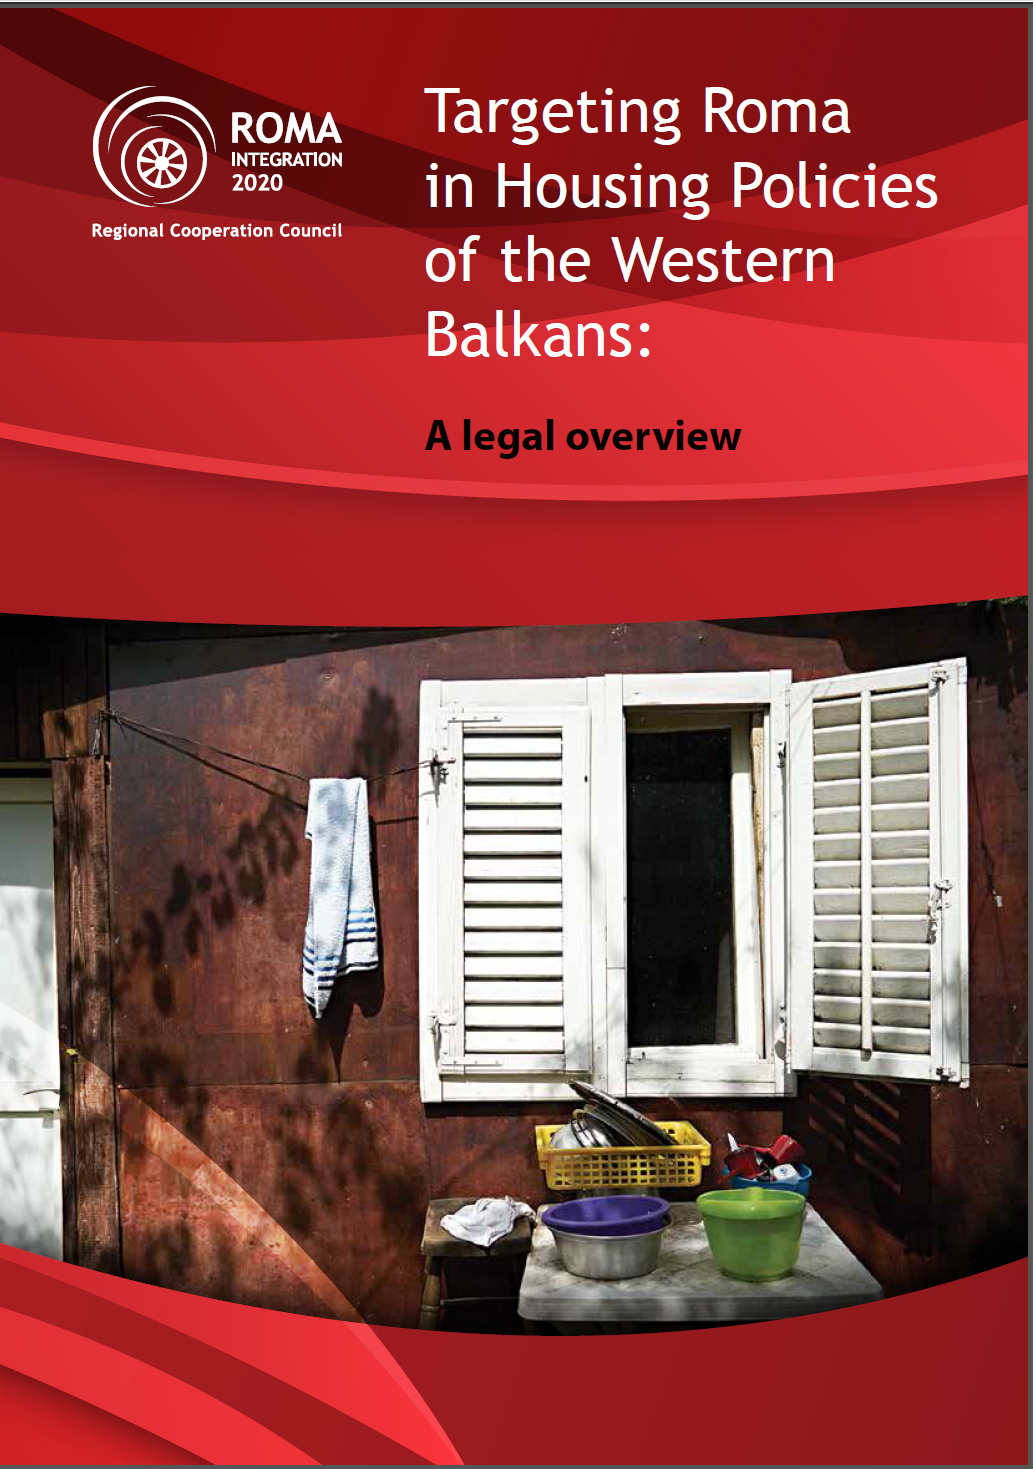 Report: Targeting Roma in Housing Policies of the Western Balkans - A legal overview